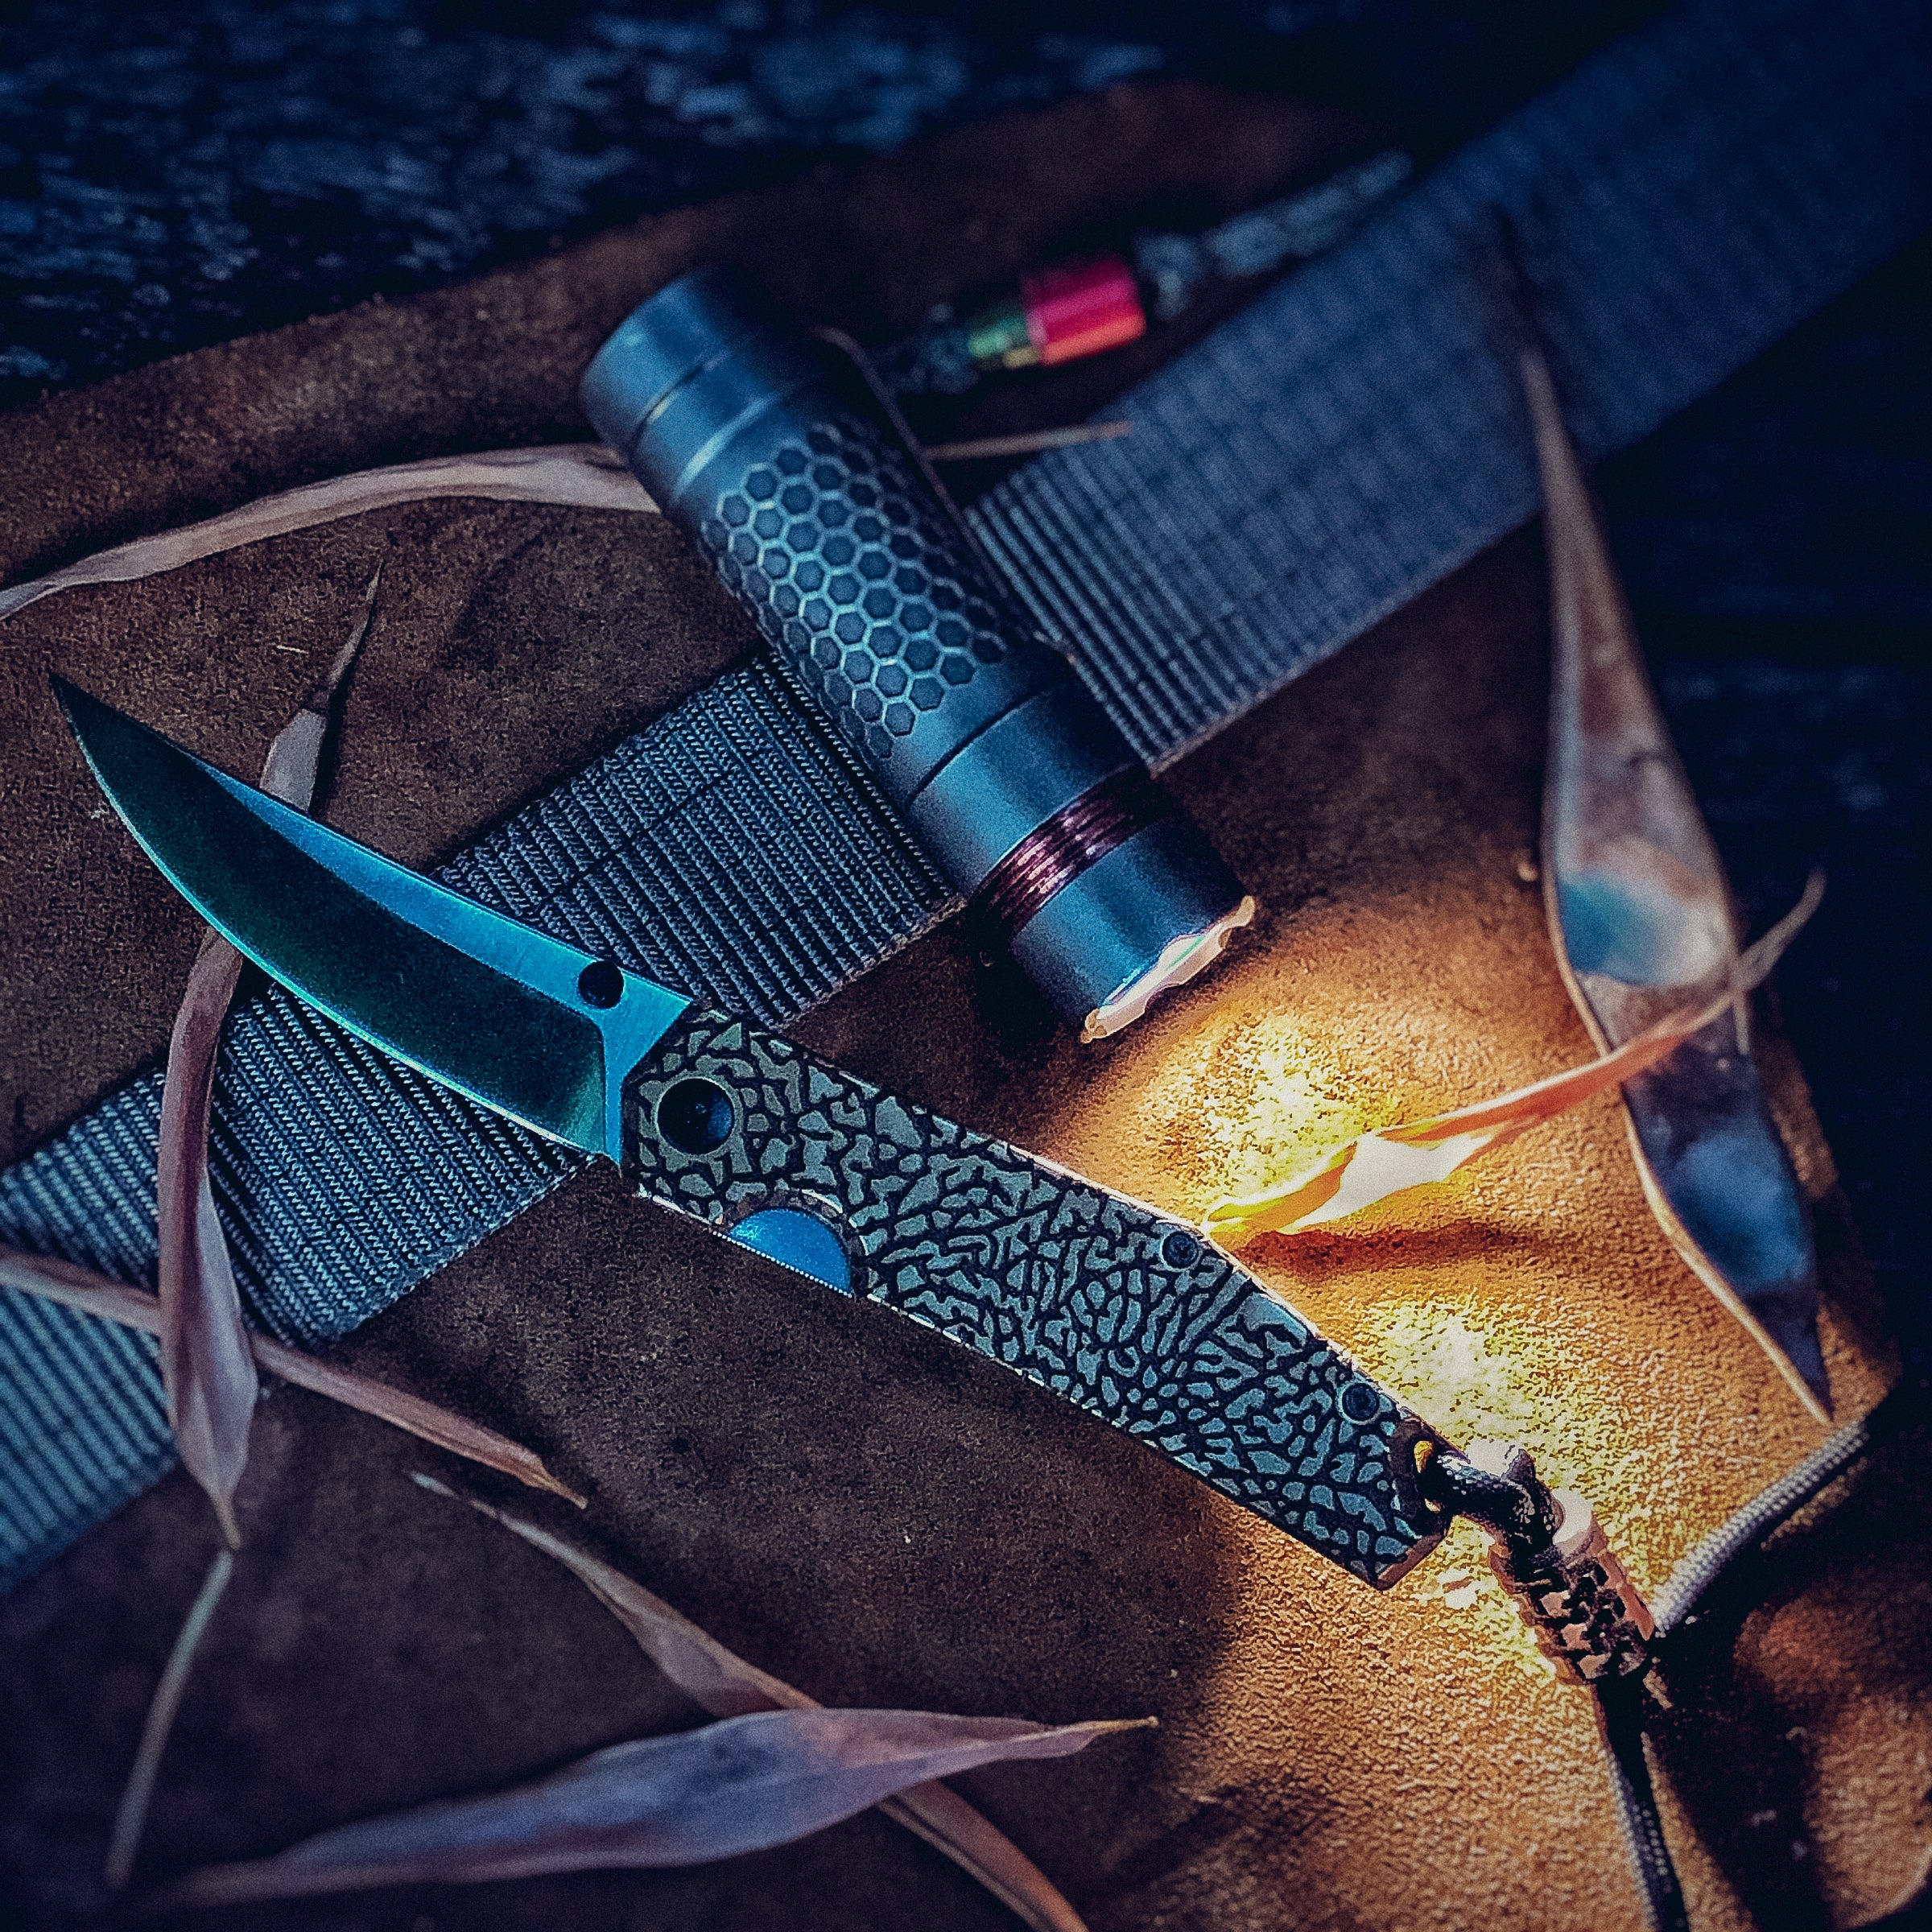 Prometheus Edition: GiantMouse Clyde Pocket Knife